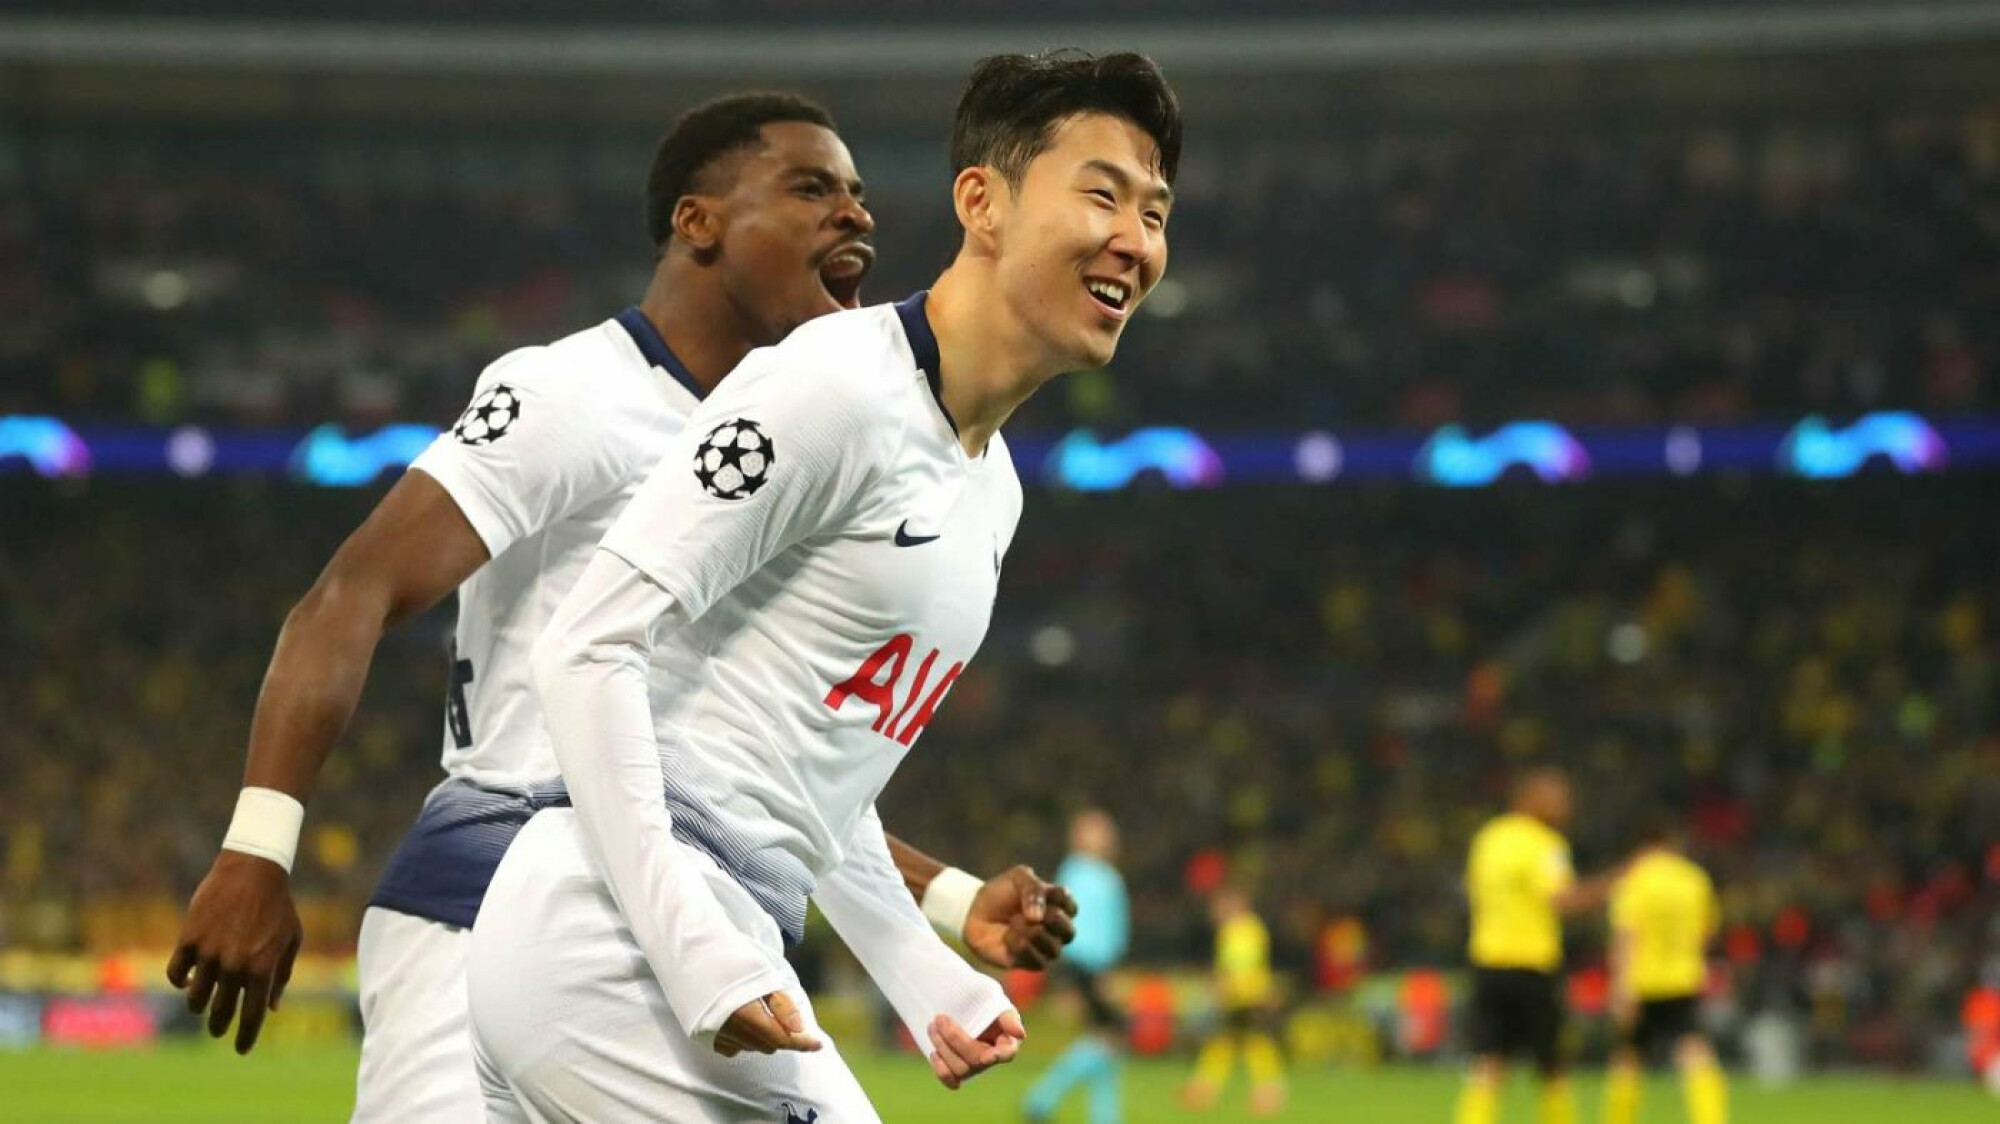 Champions League: Rd of 16 - Tottenham rout Dortmund while Madrid edge past AFC Ajax